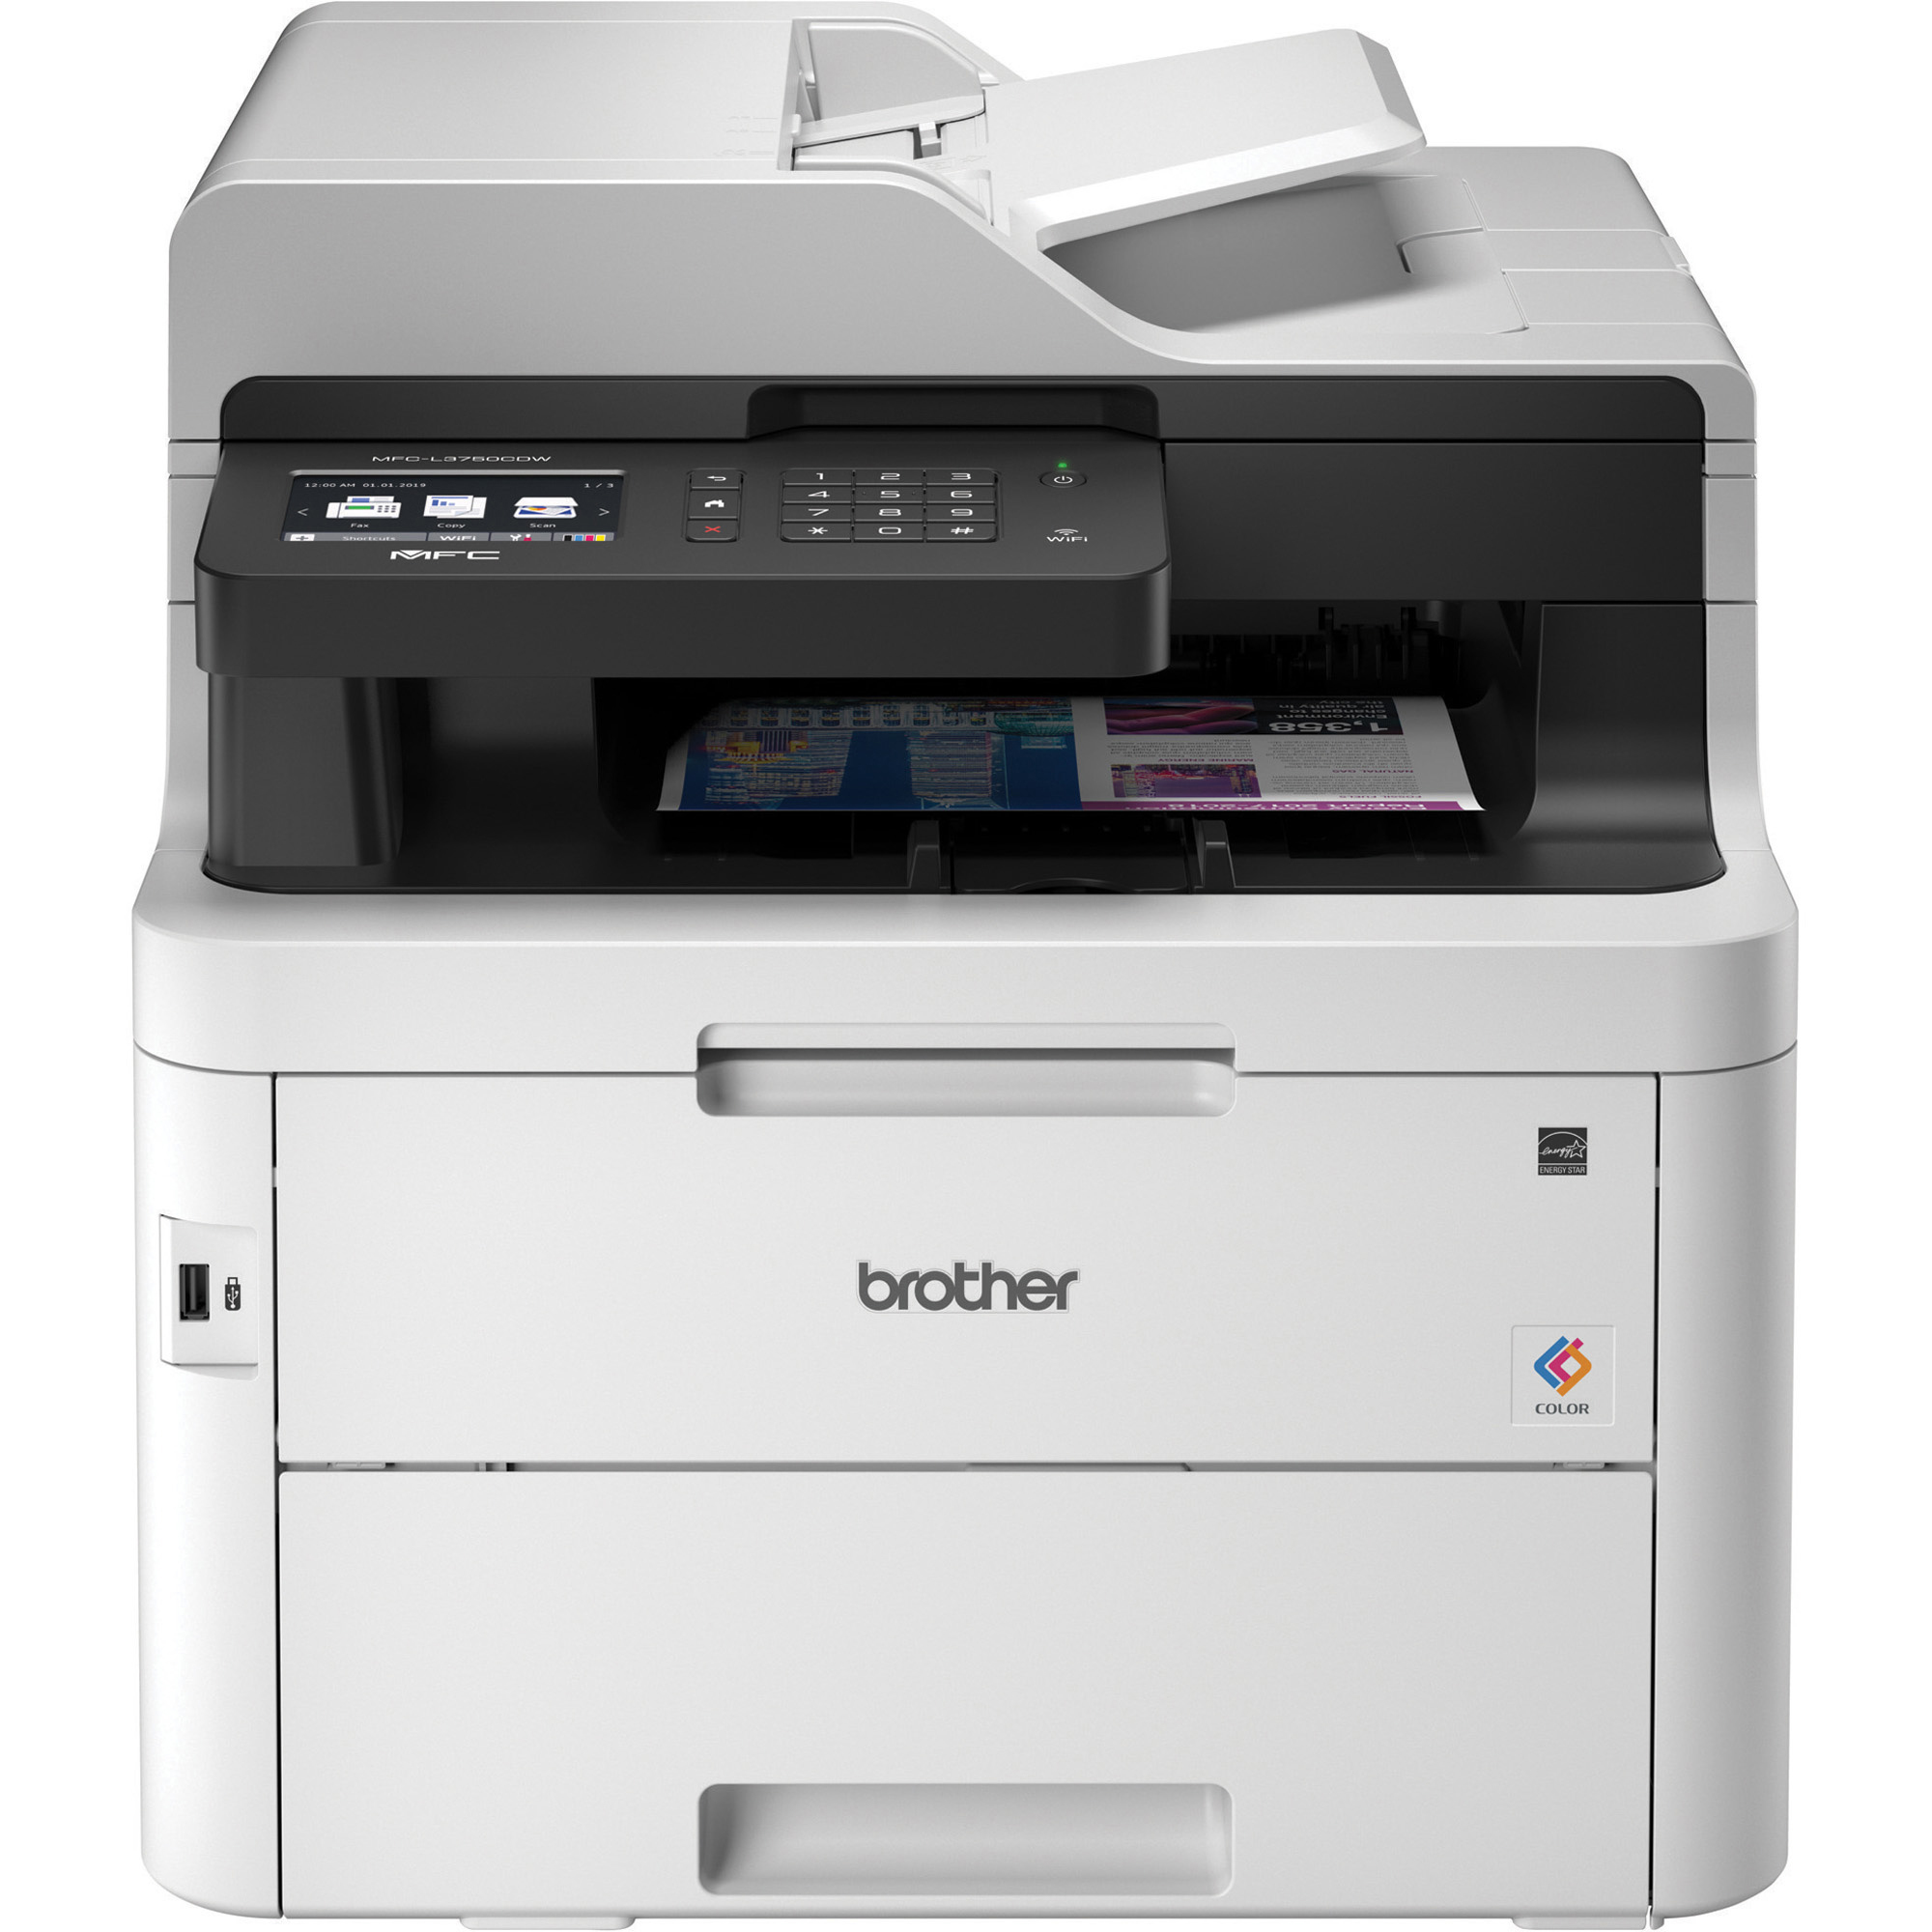 Brother Mfc L3750cdw Compact Digital Color All In One Printer Providing Laser Quality Results With 3 7 Color Touchscreen Wireless And Duplex Printing Officesupply Com